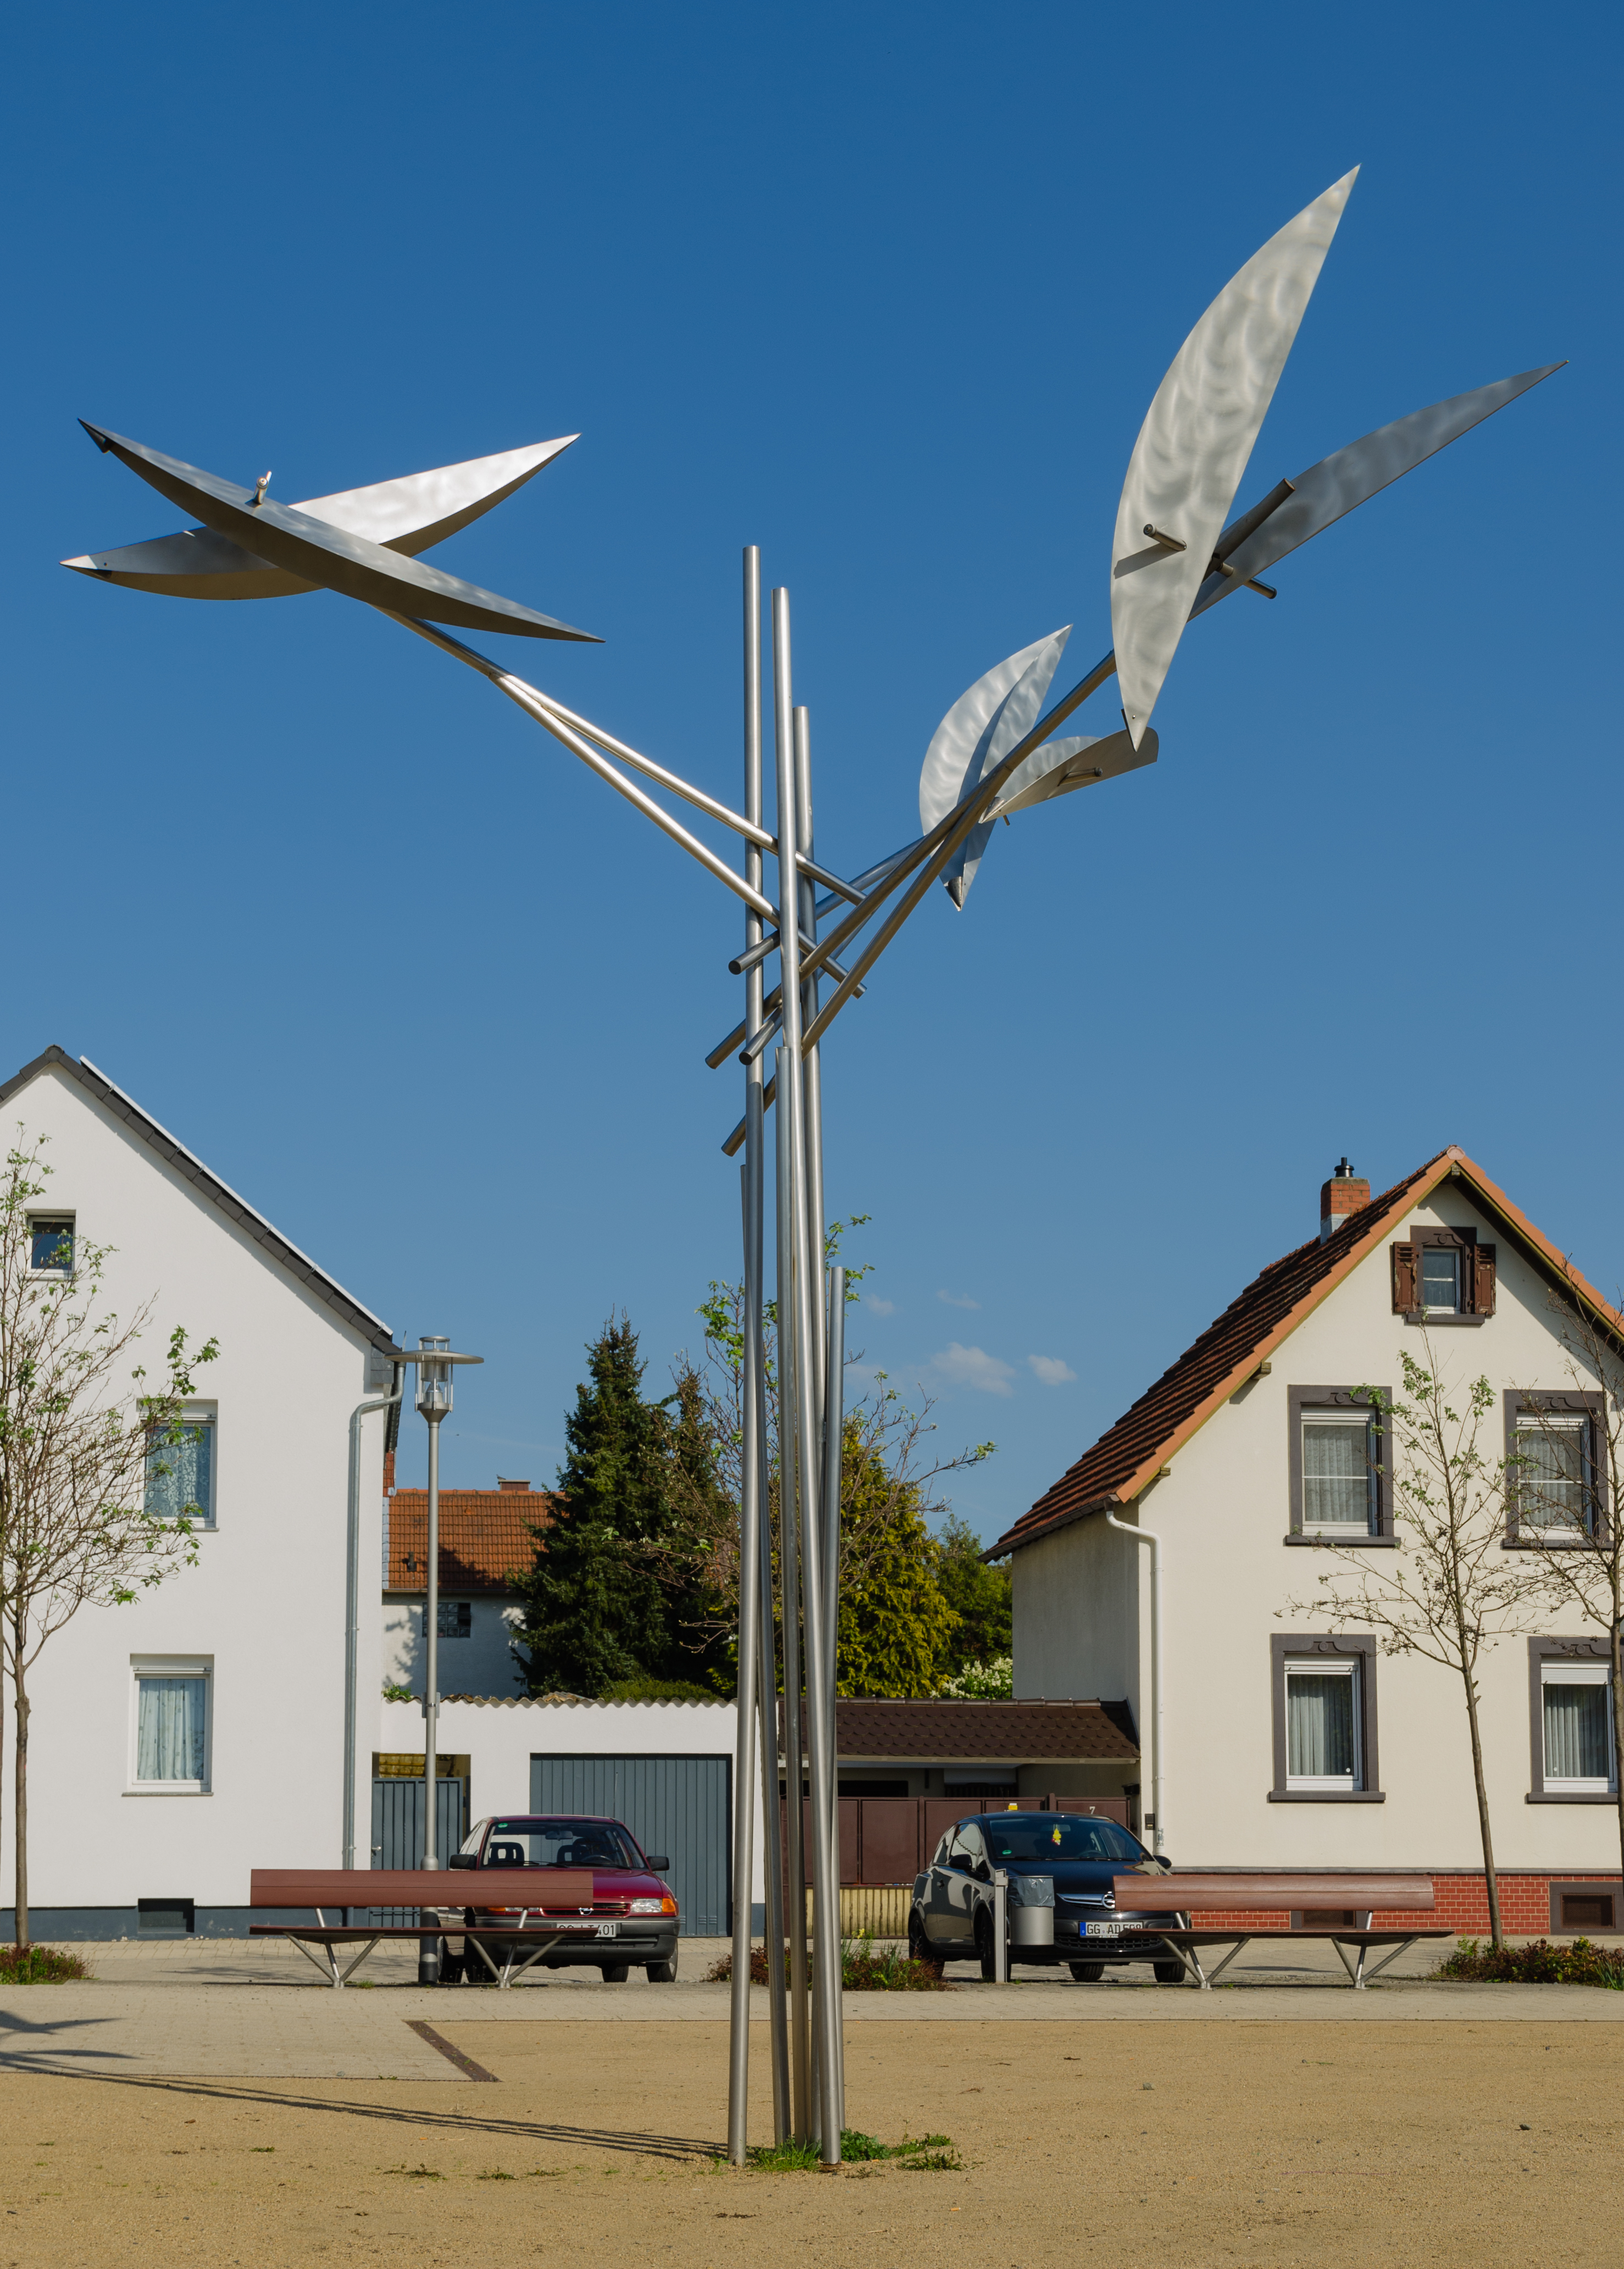 Walldorf Germany  city photos gallery : Sky Bird Mörfelden Walldorf Germany 01 Wikimedia ...